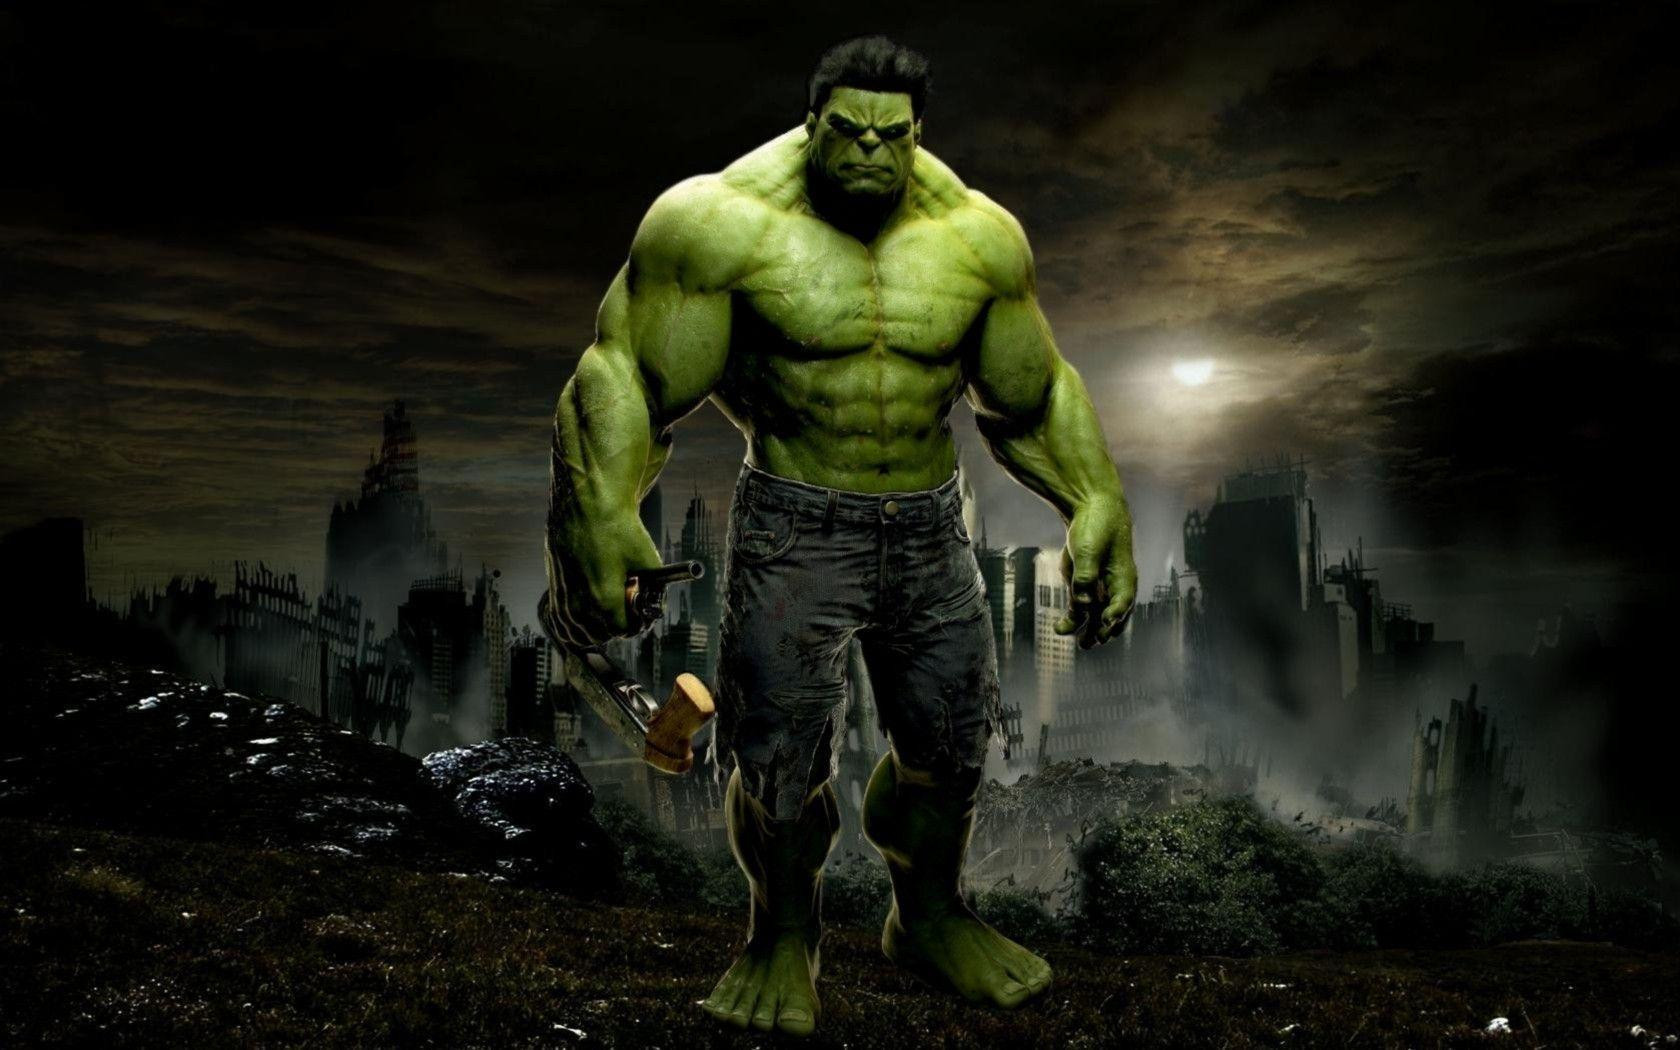 It is a picture of Ridiculous The Hulk Images